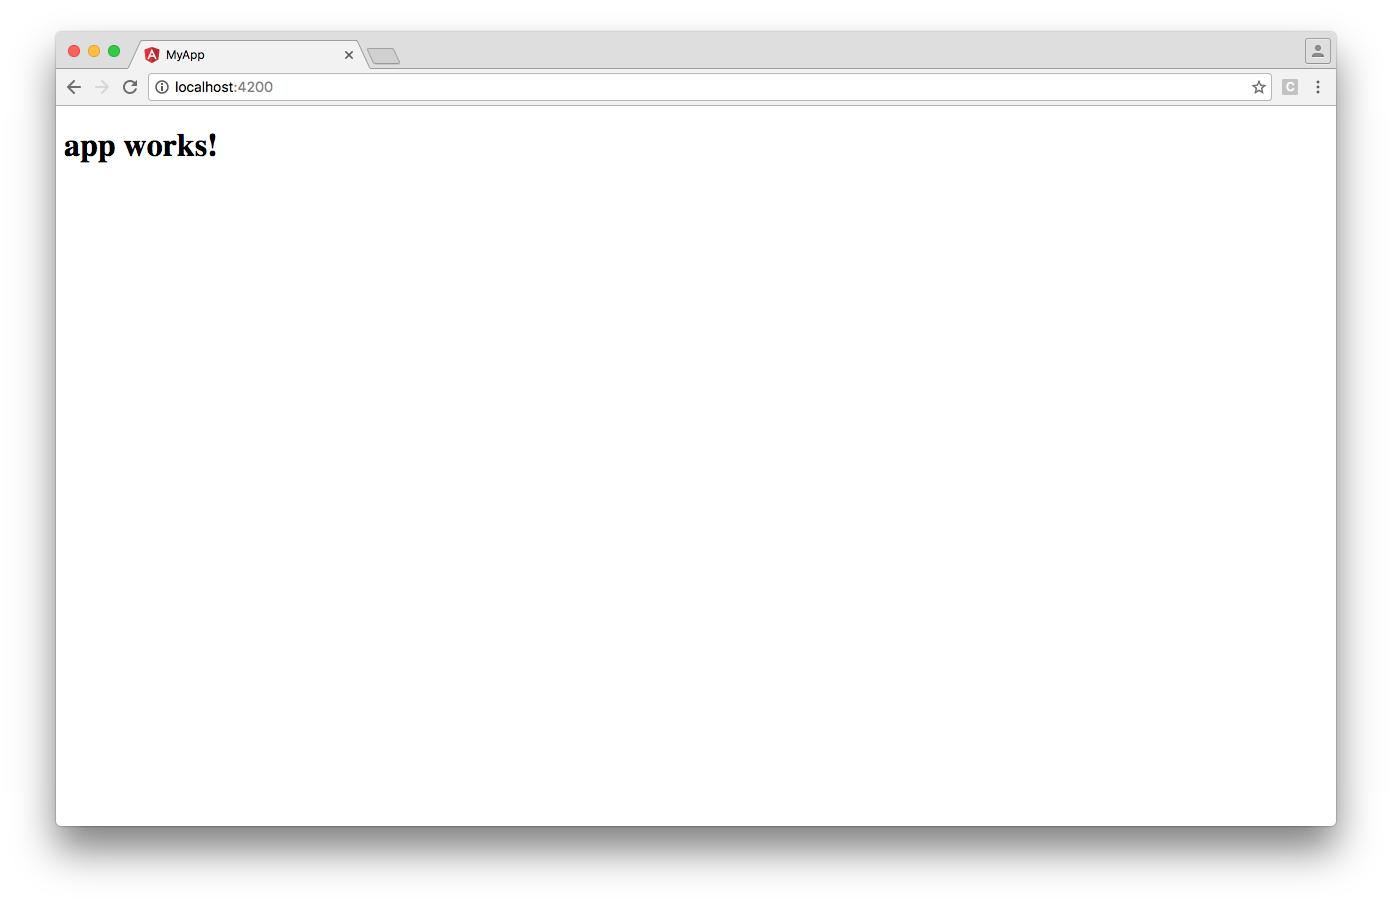 Angular CLI: Browser window showing 'app works!' text